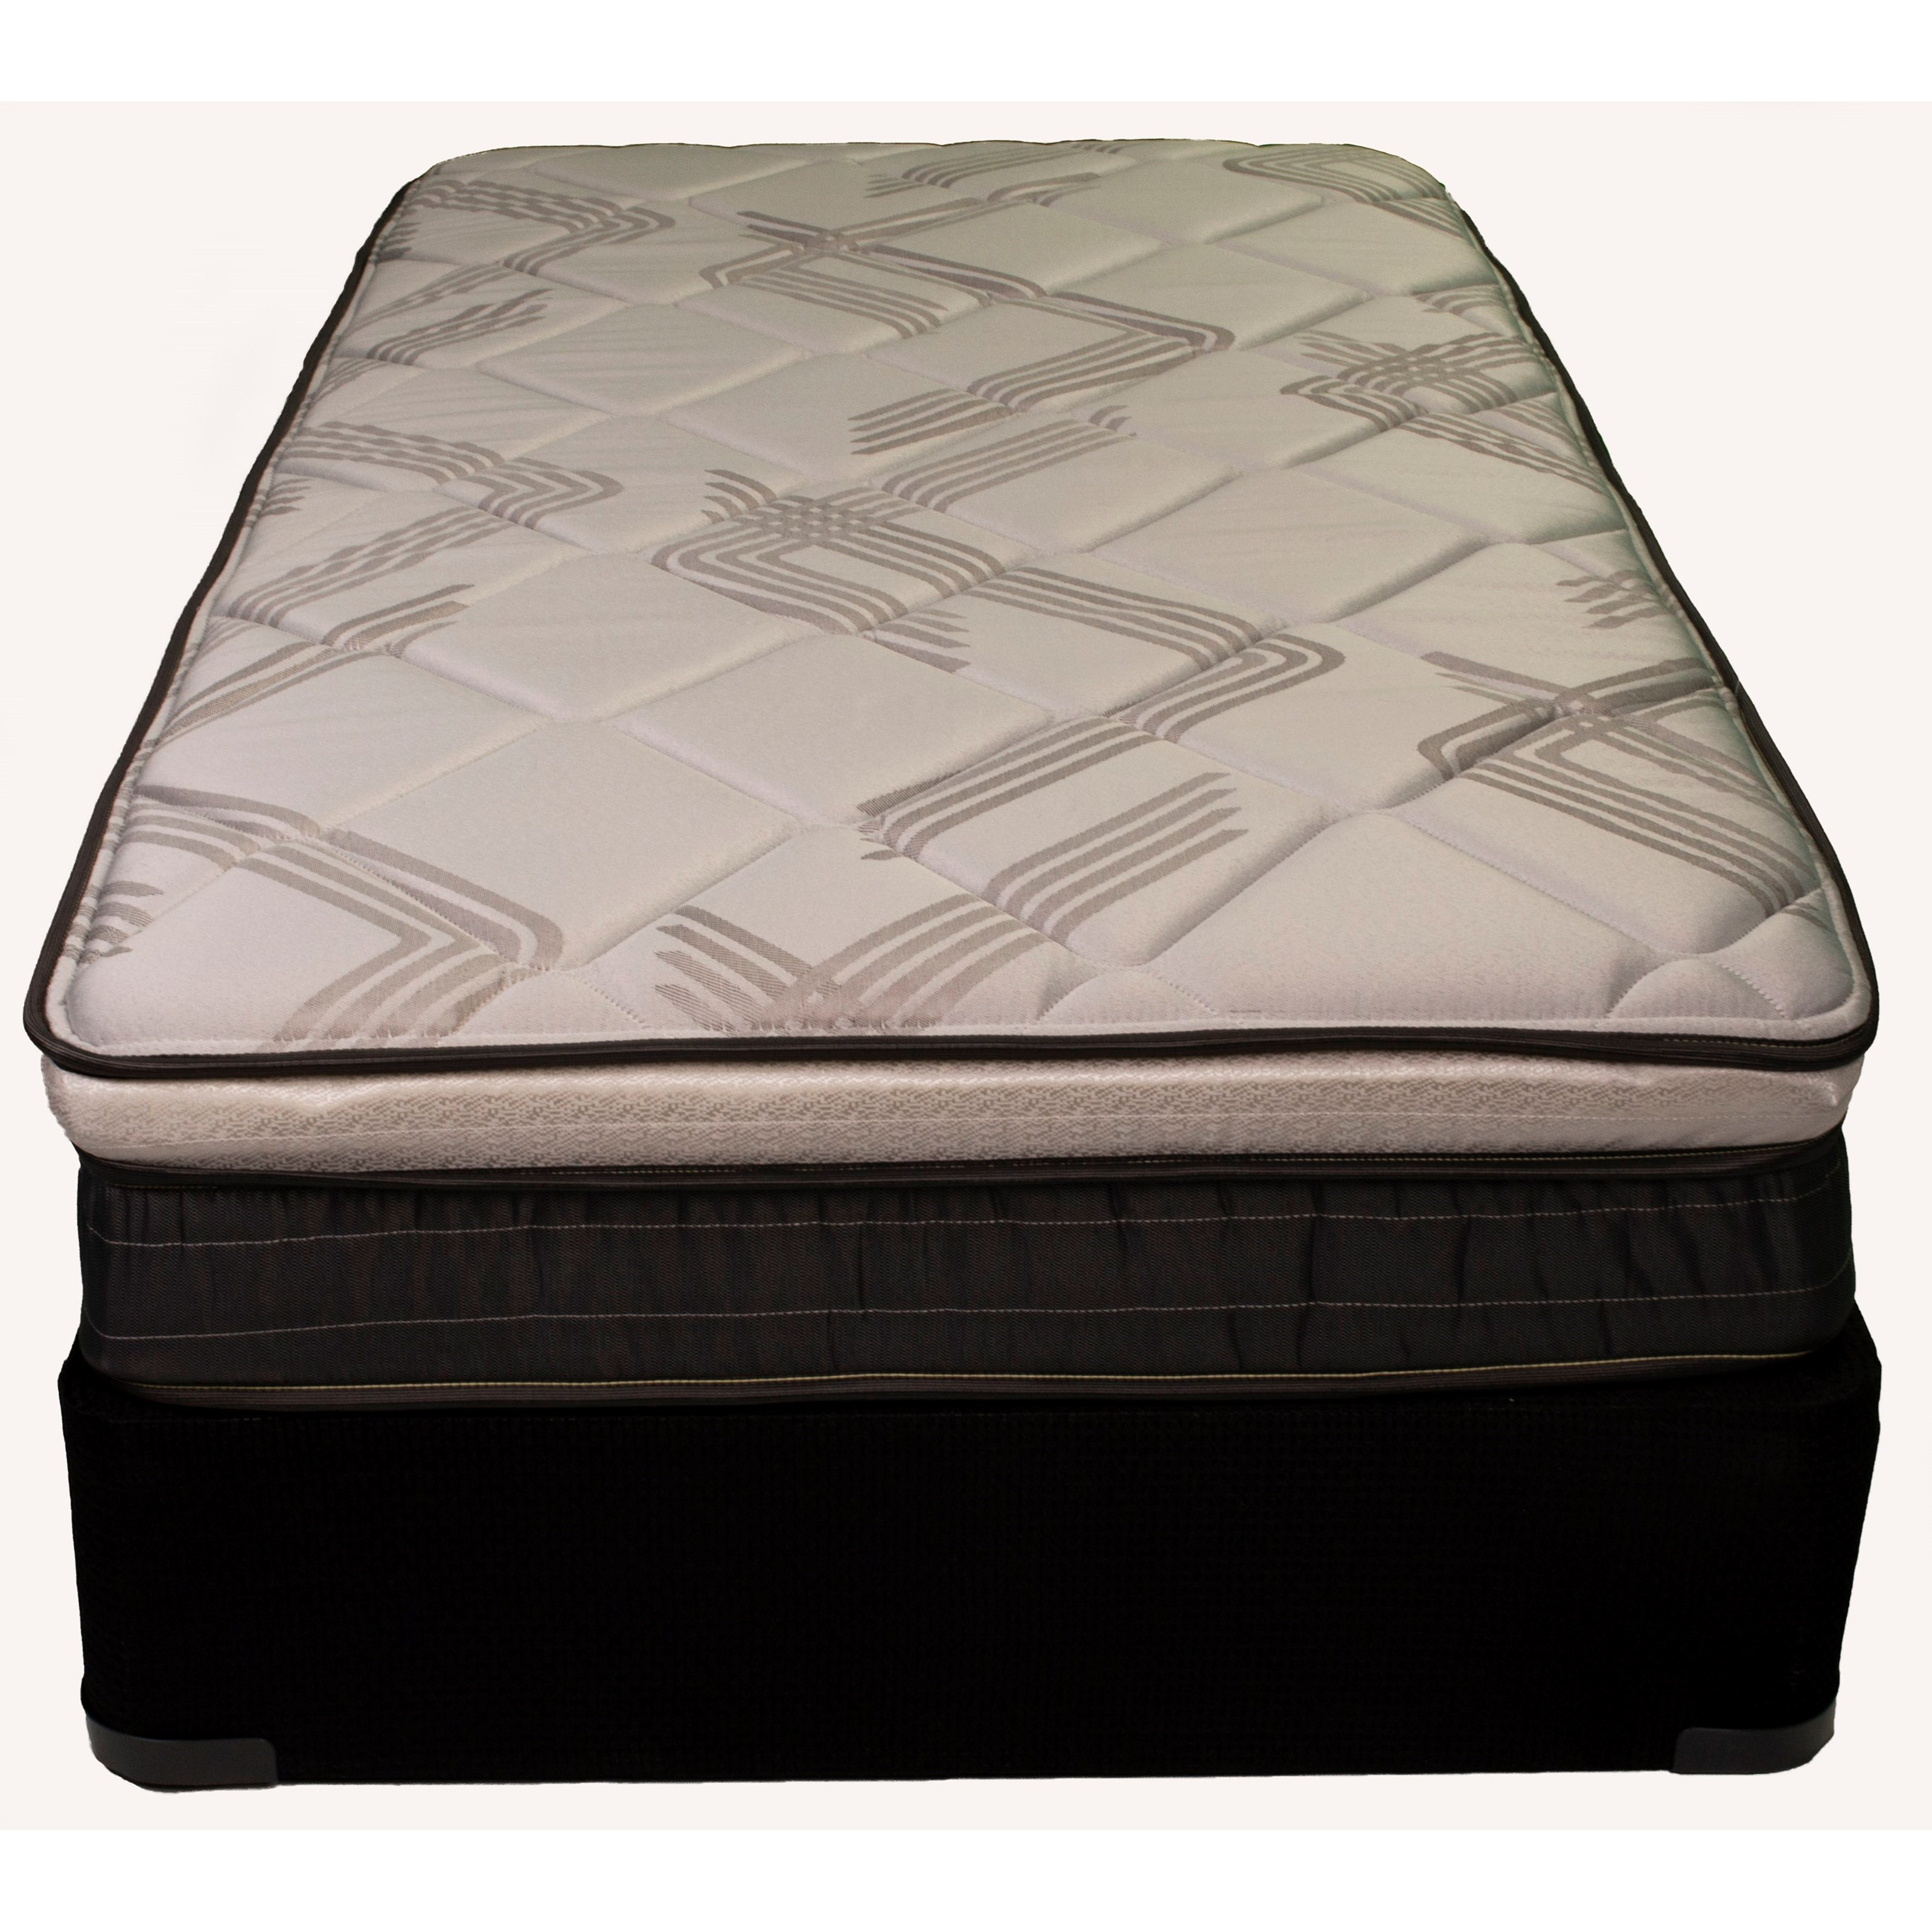 """Artisan ET King 9 1/2"""" Euro Top Mattress Set by Solstice Sleep Products at EFO Furniture Outlet"""